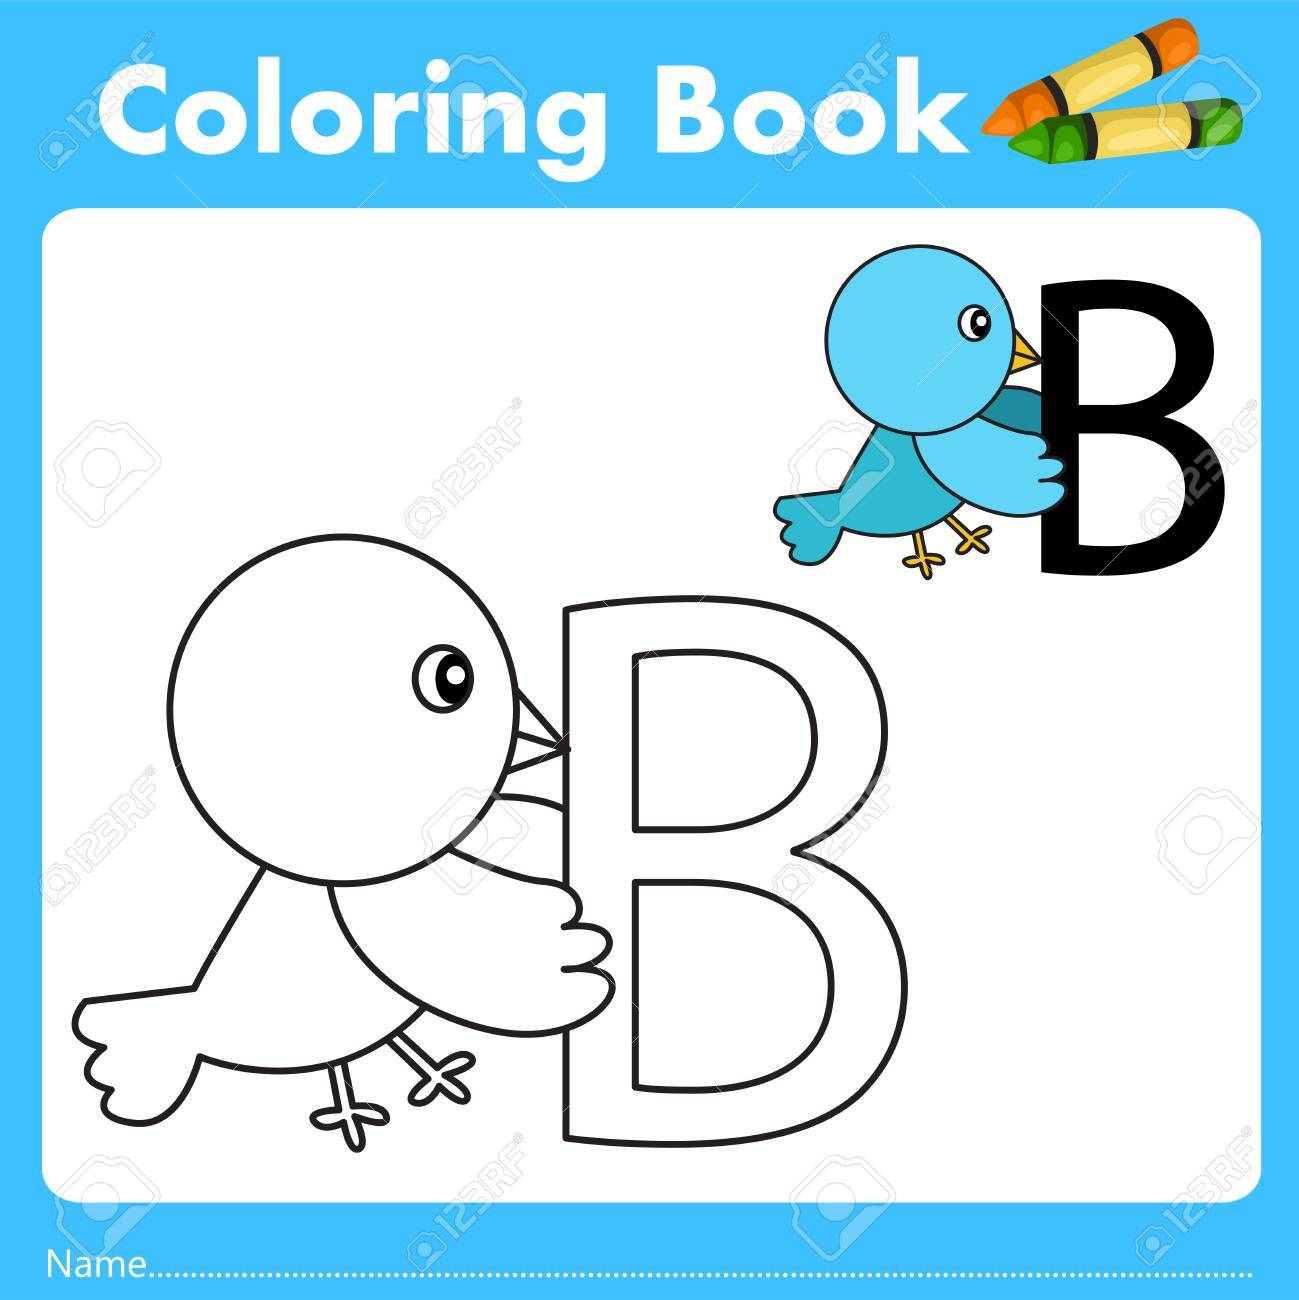 Book color illustrator - Illustrator Of Color Book With Bird Animal Stock Vector 67062101